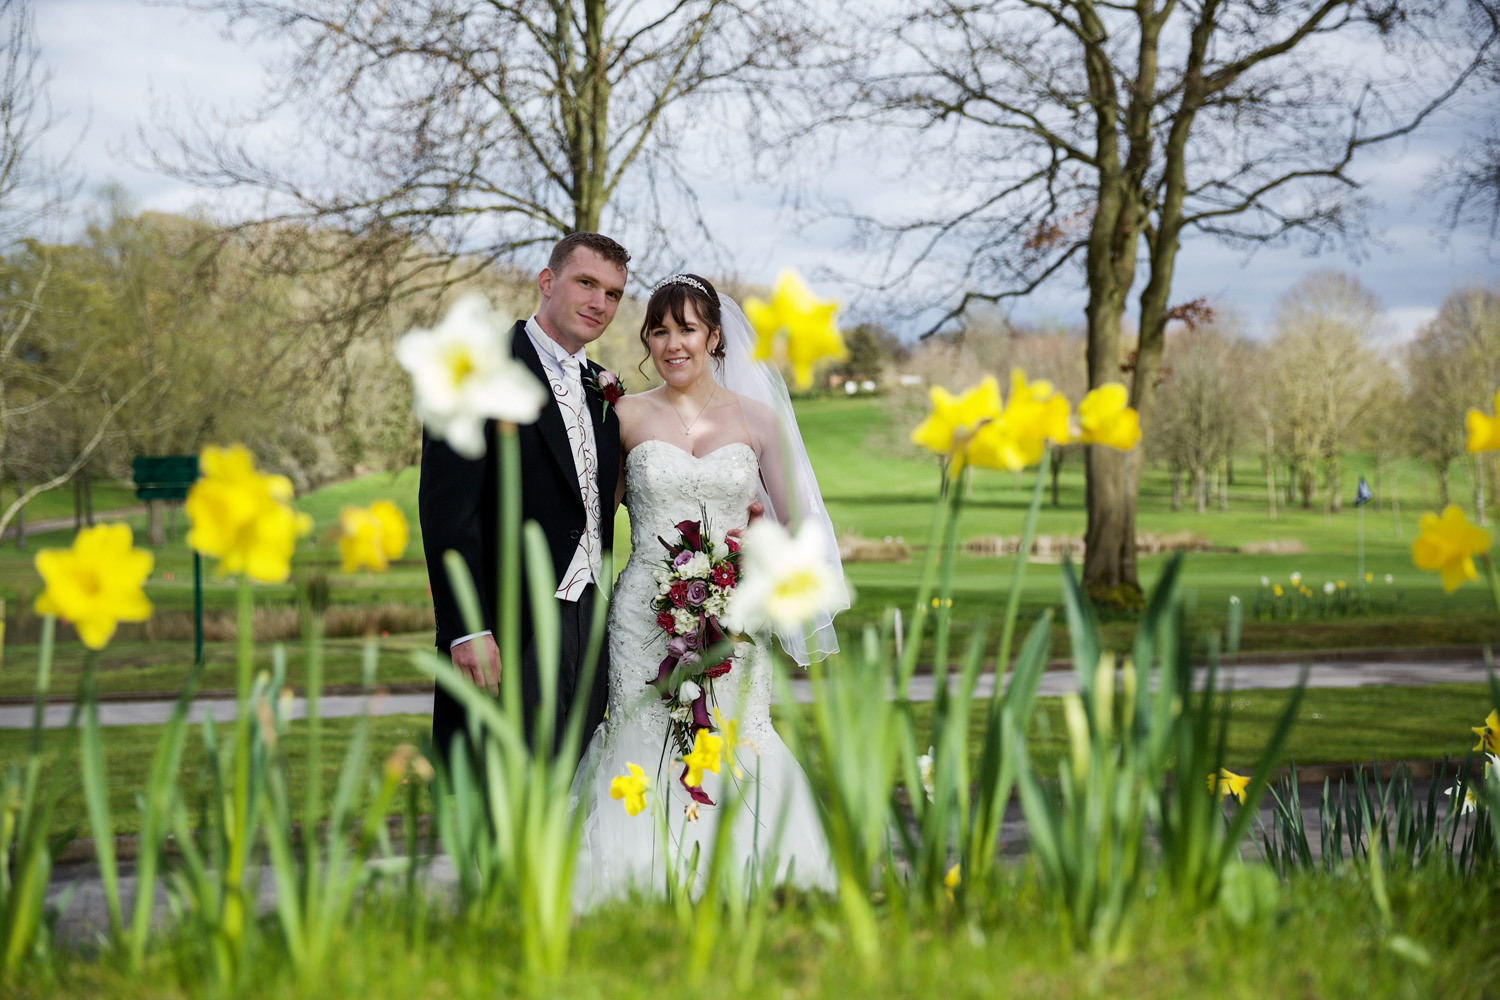 Sandford_Springs_Wedding_Photographer_Newbury_028.jpg